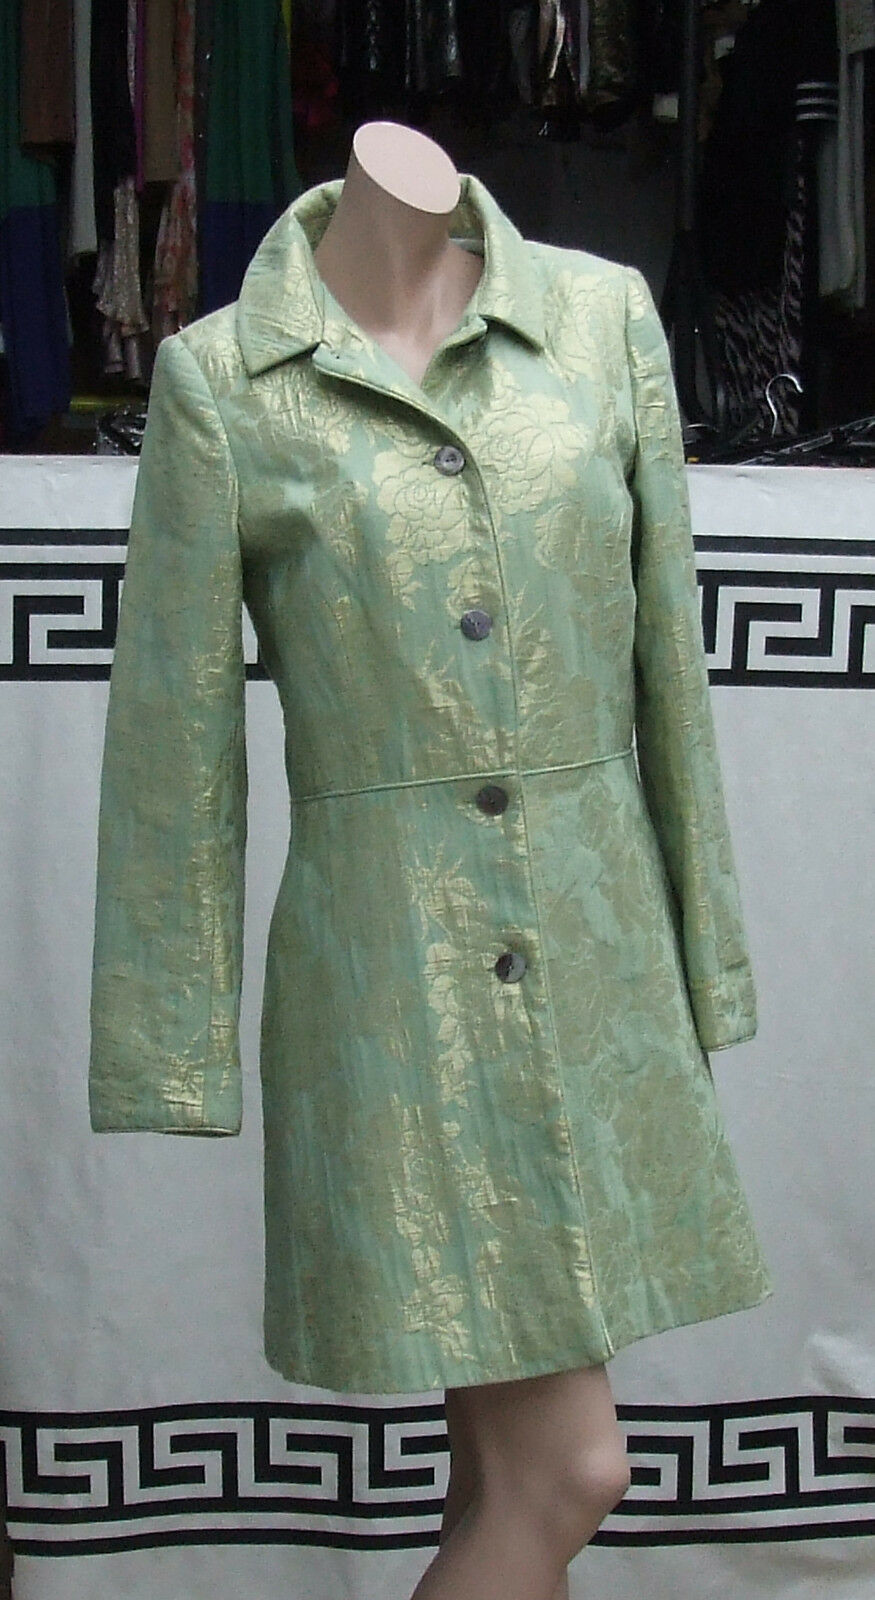 Sz S Glorious Fitted Green Button Down Ultra Stylish Designer Coat Large pinks